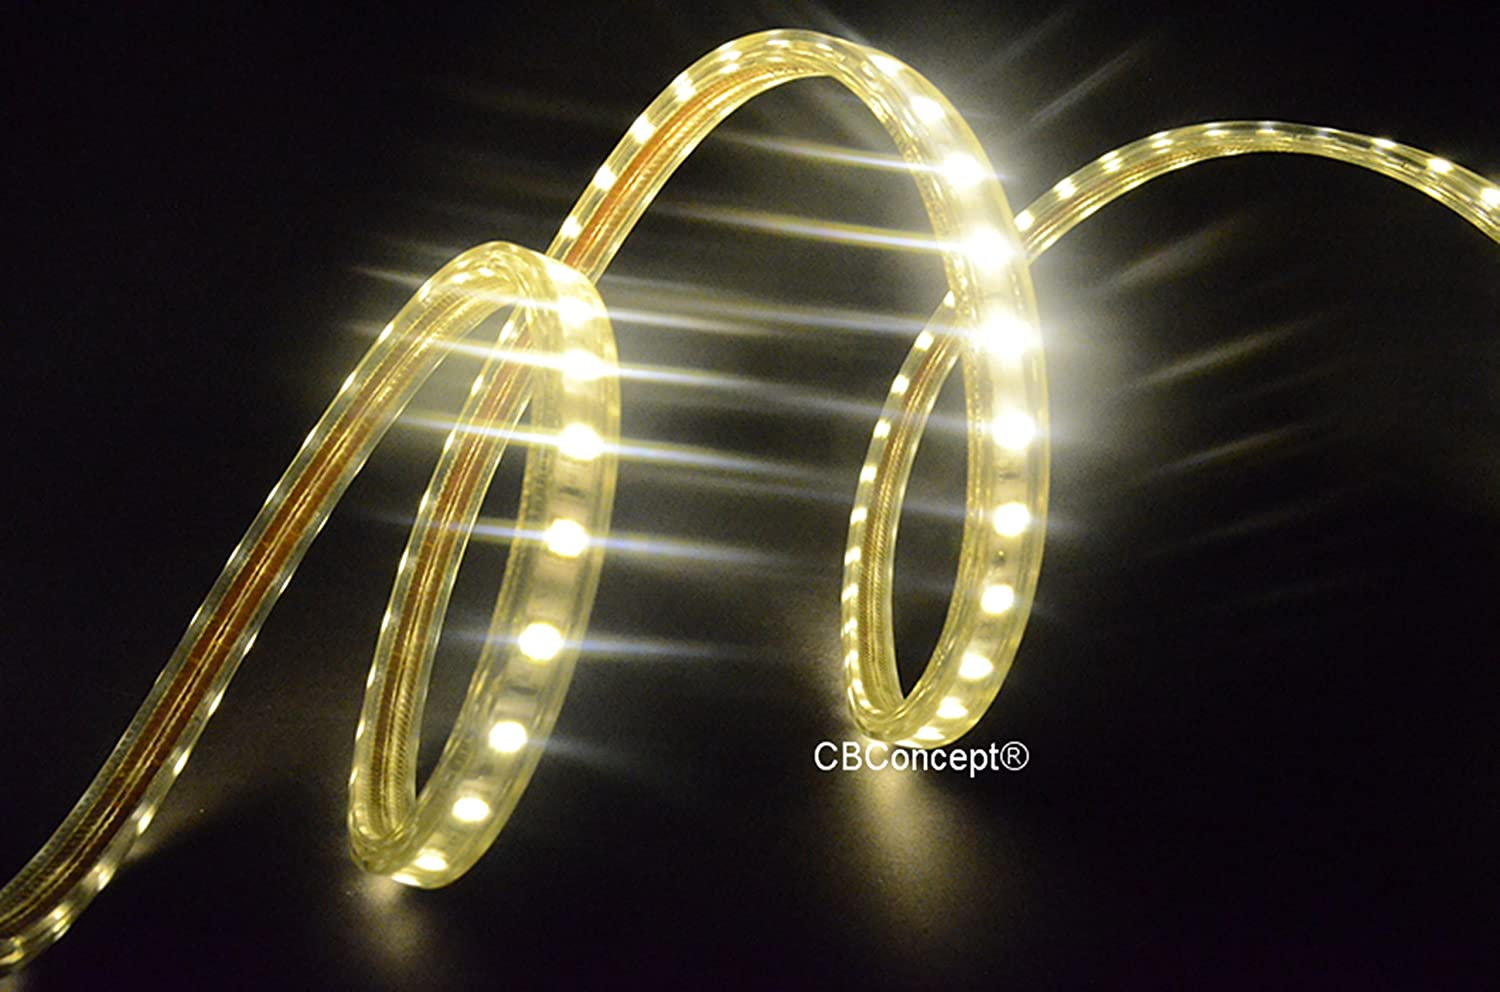 Amazon cbconcept ul listed 80 feetsuper bright 22000 lumen amazon cbconcept ul listed 80 feetsuper bright 22000 lumen 3000k warm white dimmable 110 120v ac flexible flat led strip rope light 1470 units aloadofball Choice Image